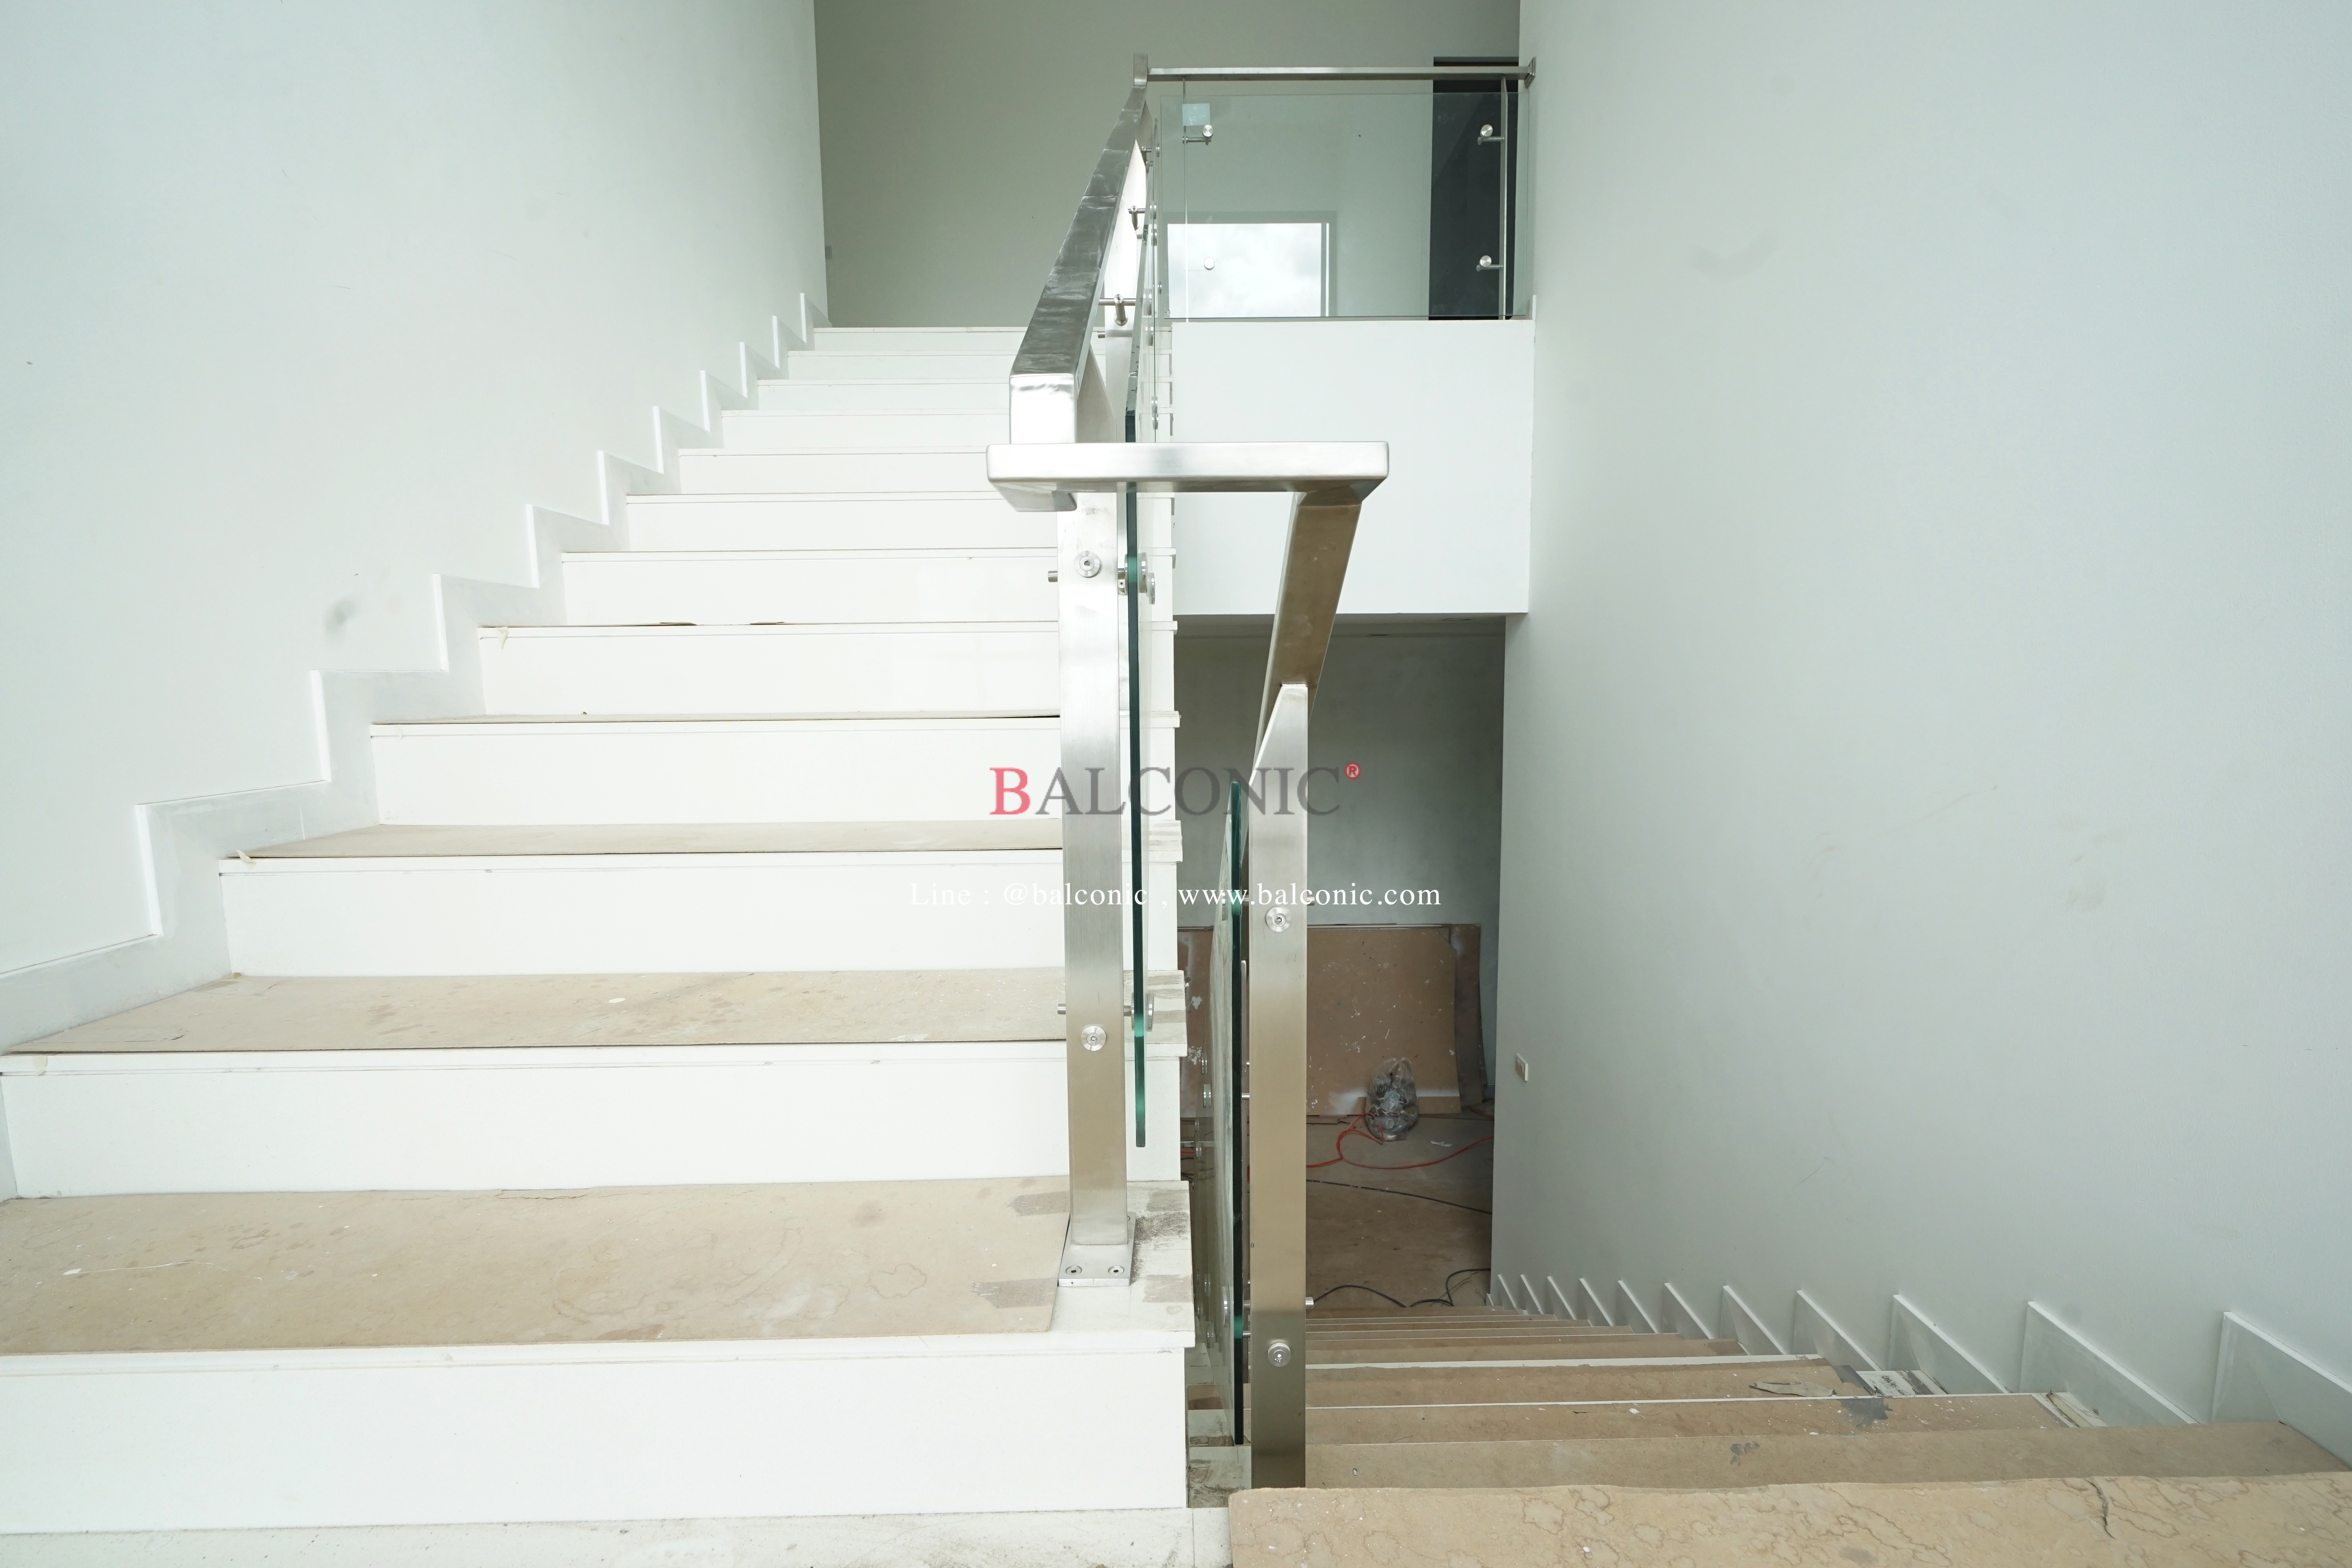 SUS STAIR RAILING DESIGN